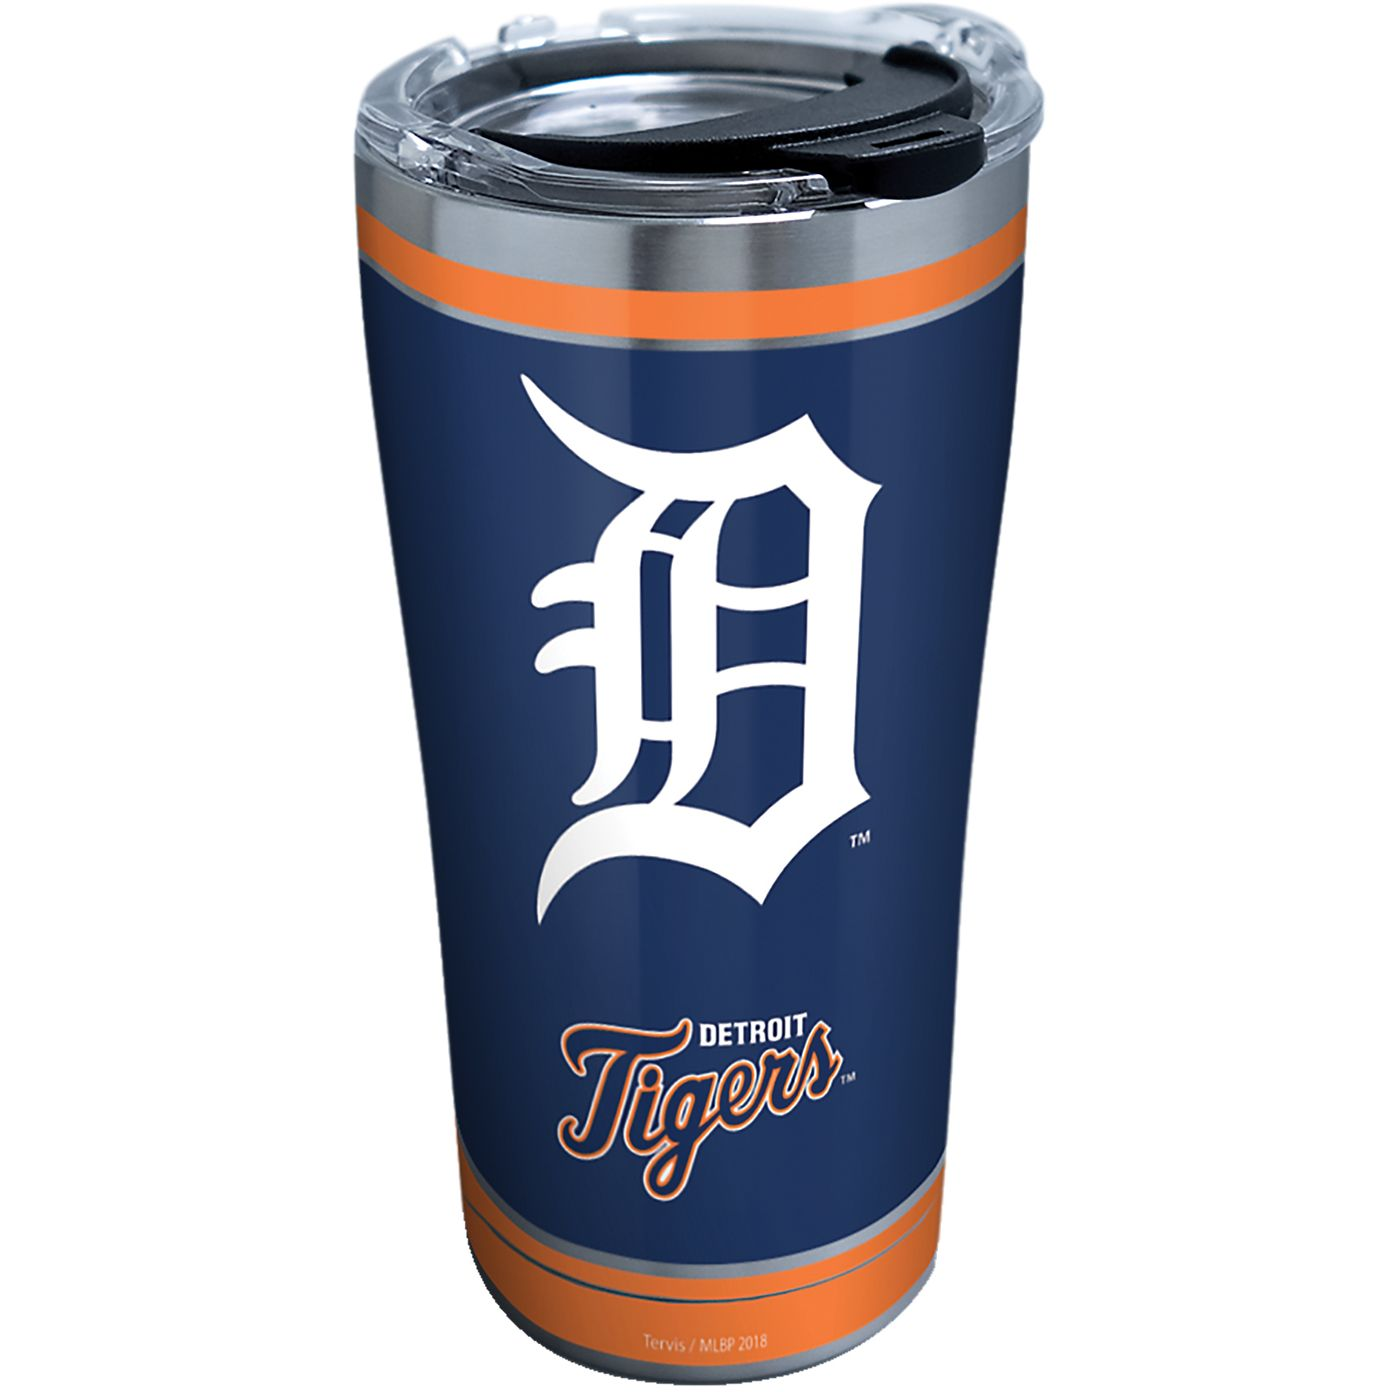 Tervis Detroit Tigers 20oz. Stainless Steel Home Run Tumbler